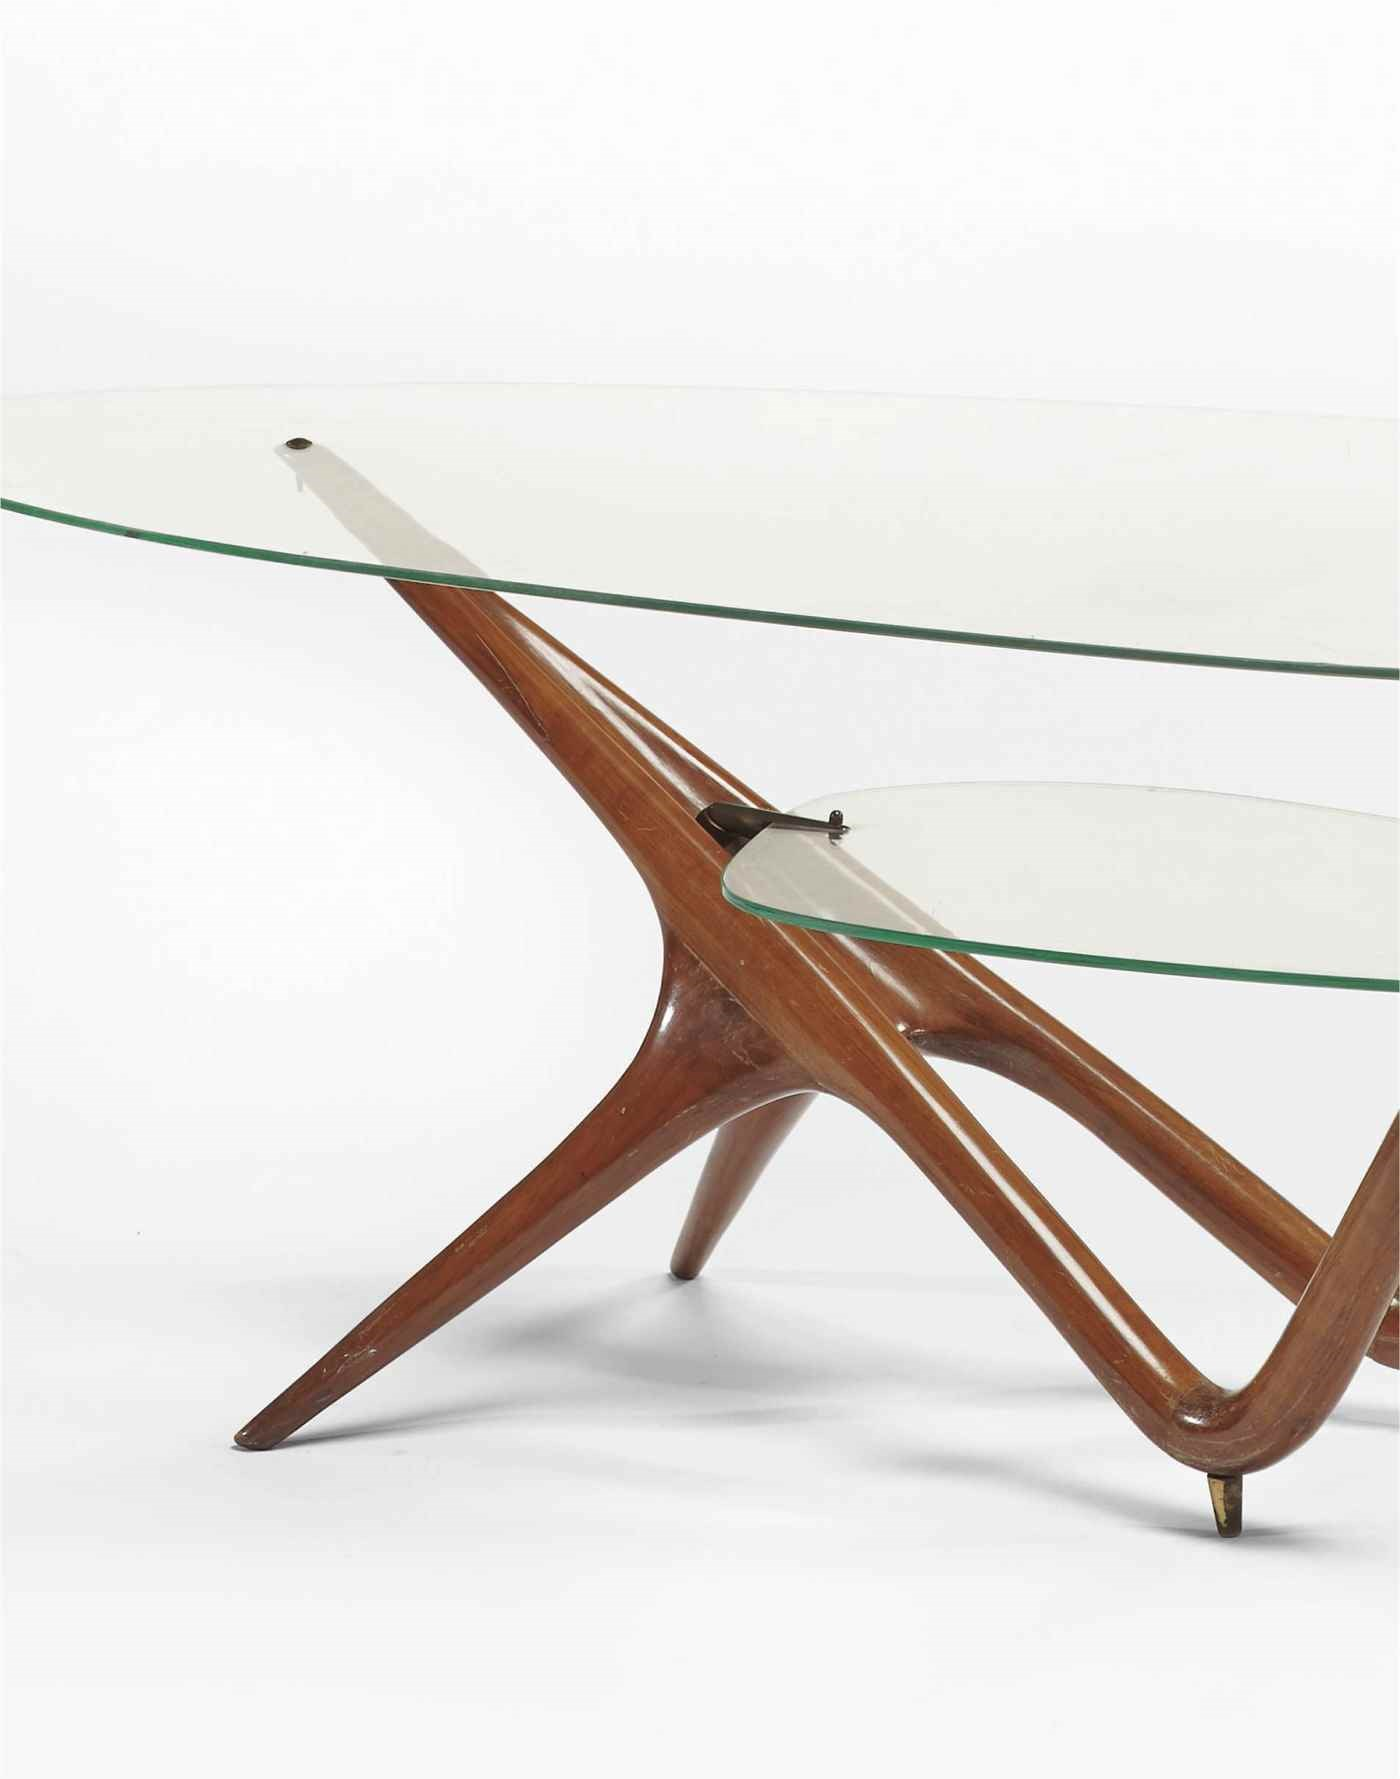 Design, vente du soir auction at Christies